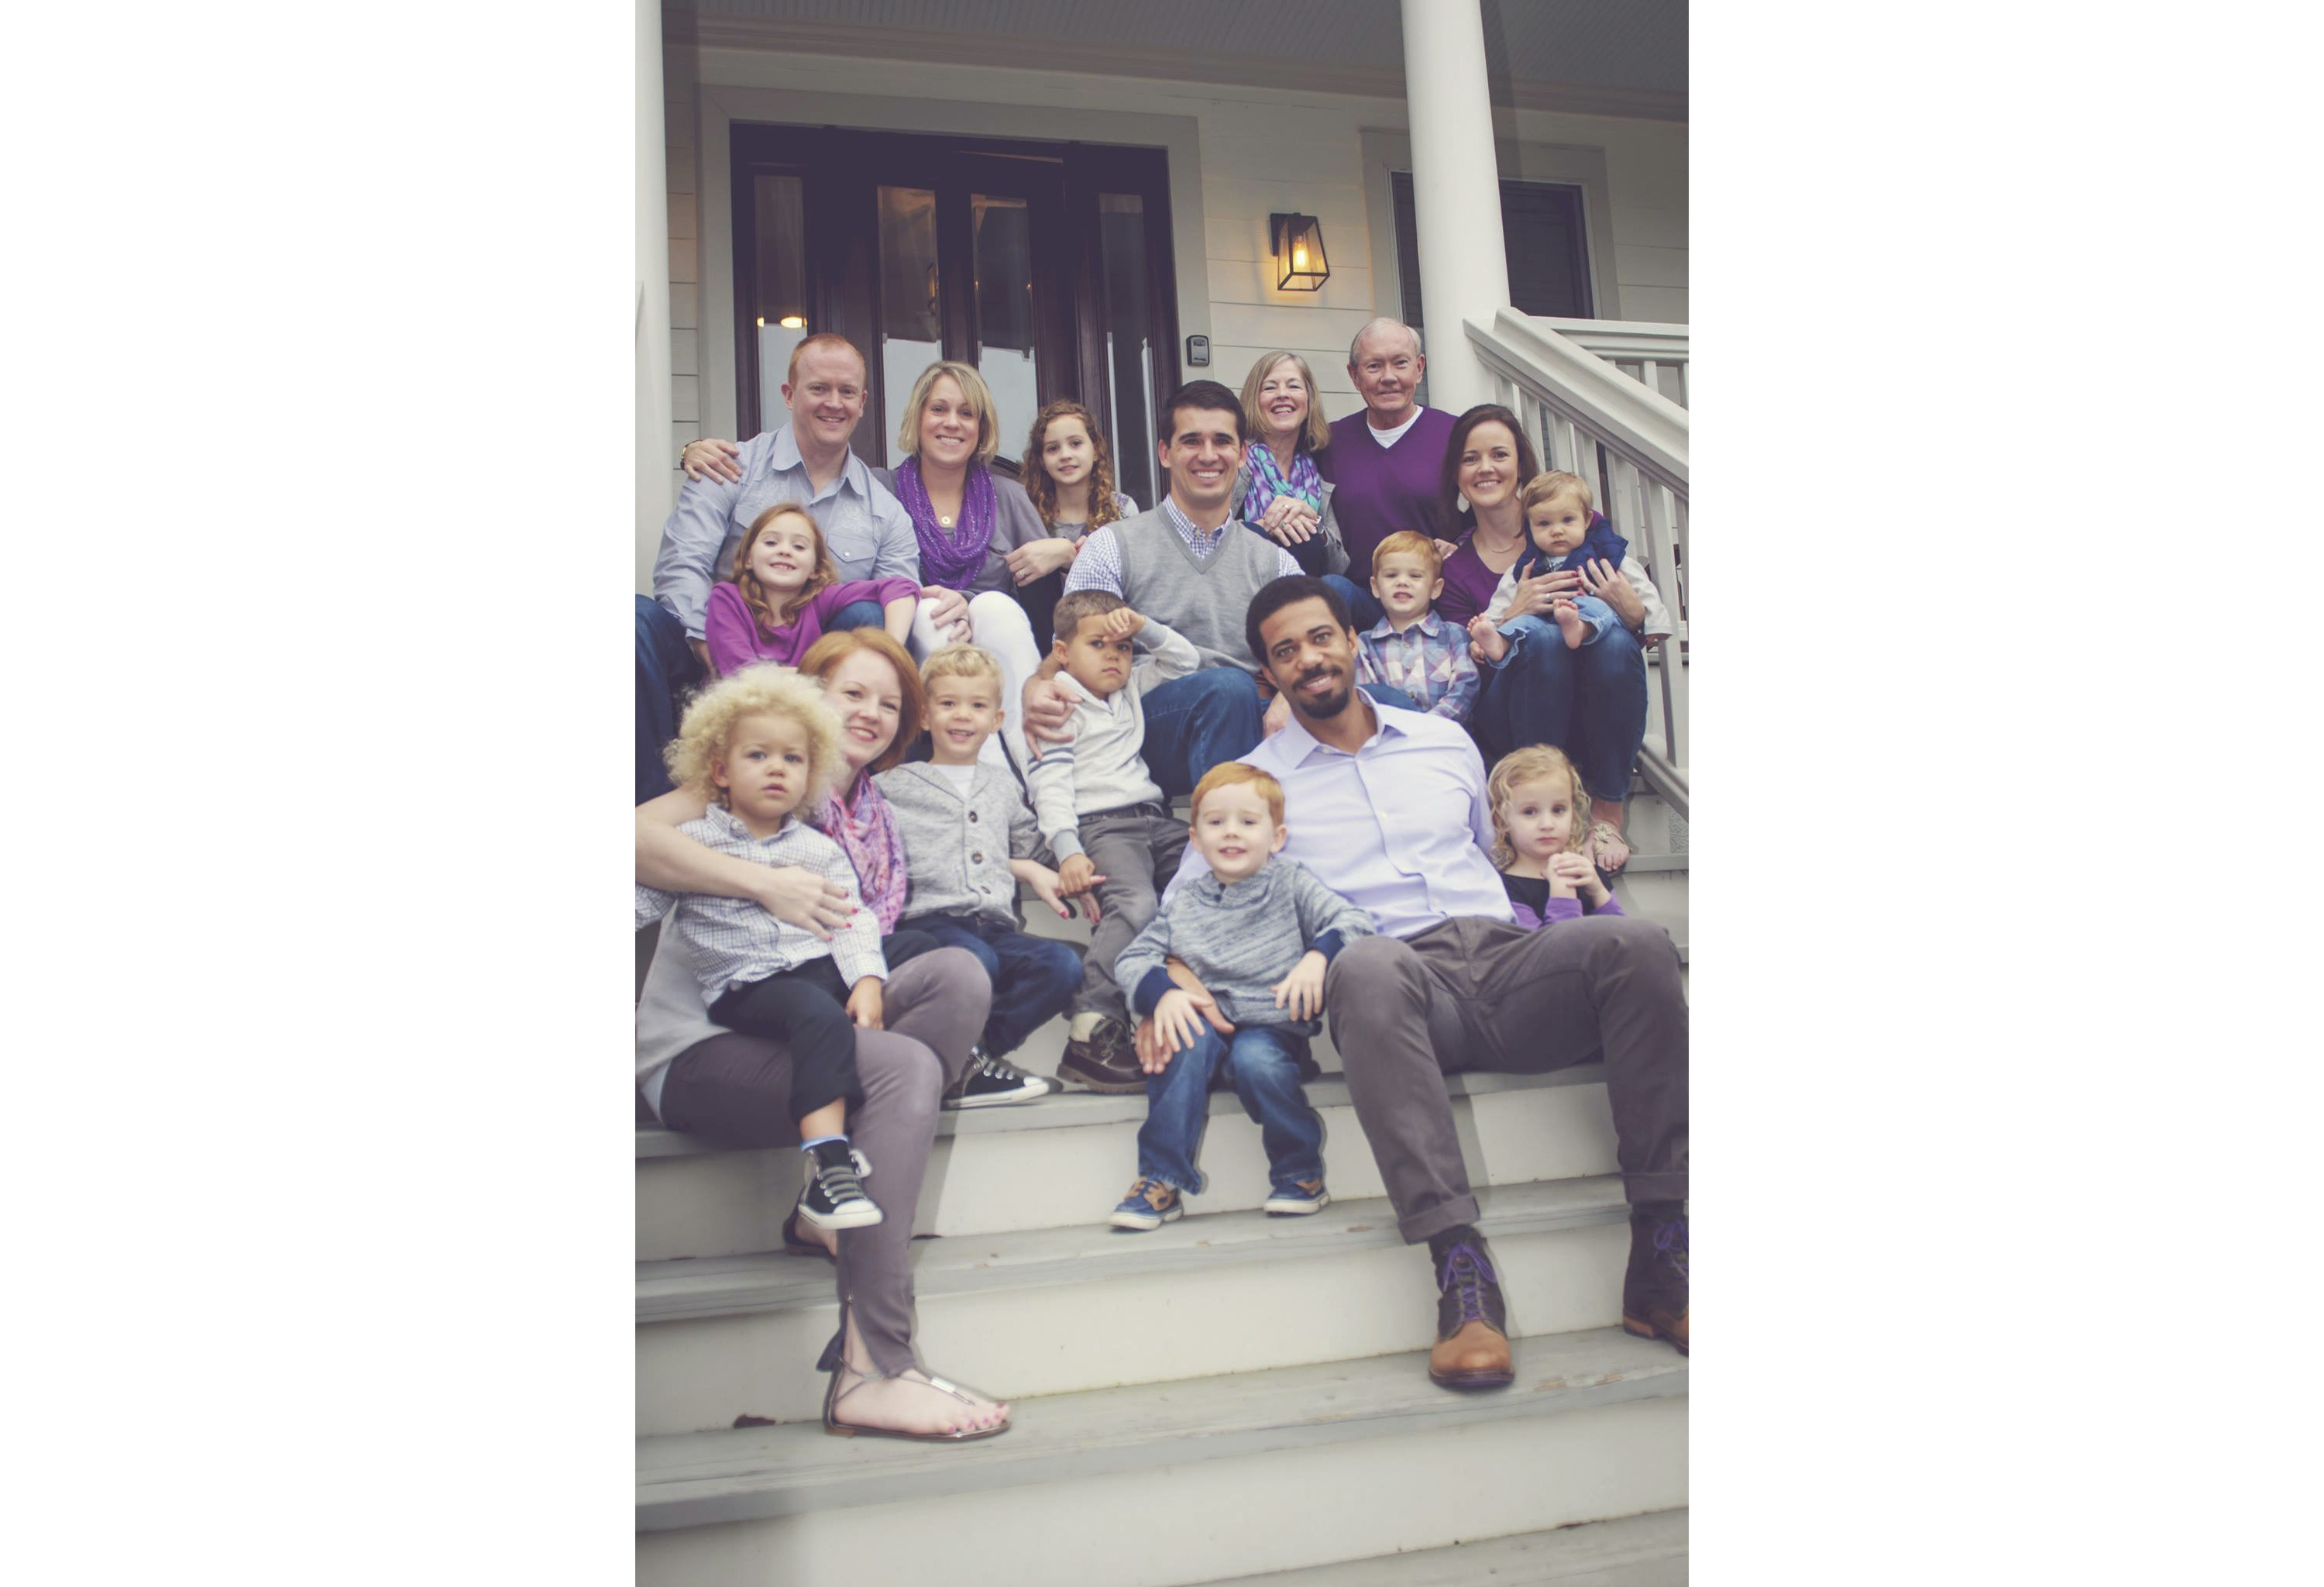 Dempsey and his wife Deanie (top right) at home with their family.­